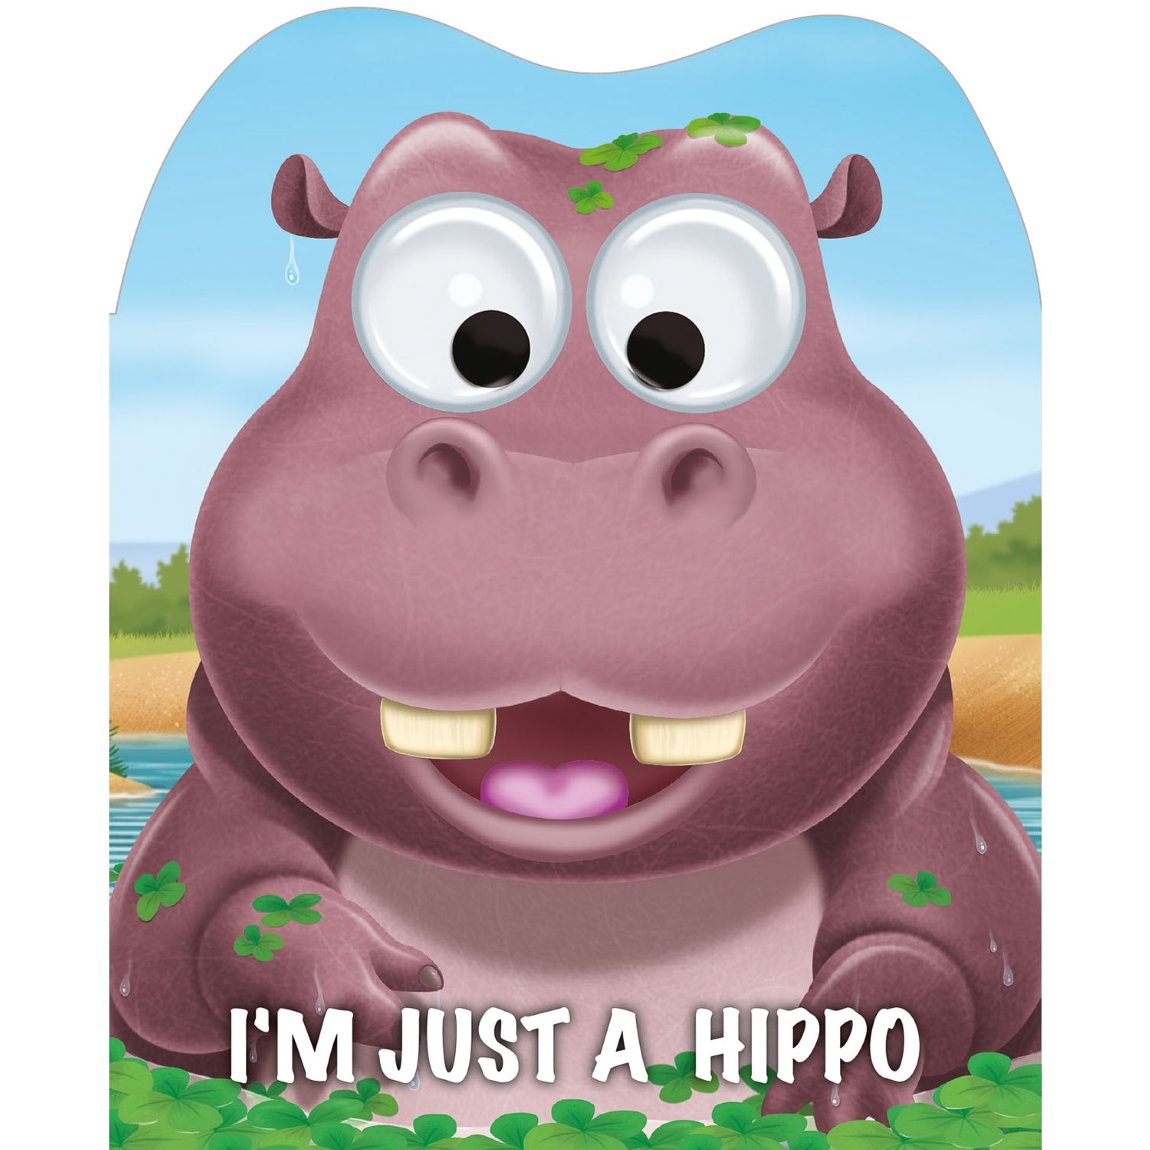 Googley Eyes Board Book - I'm Just a Hippo